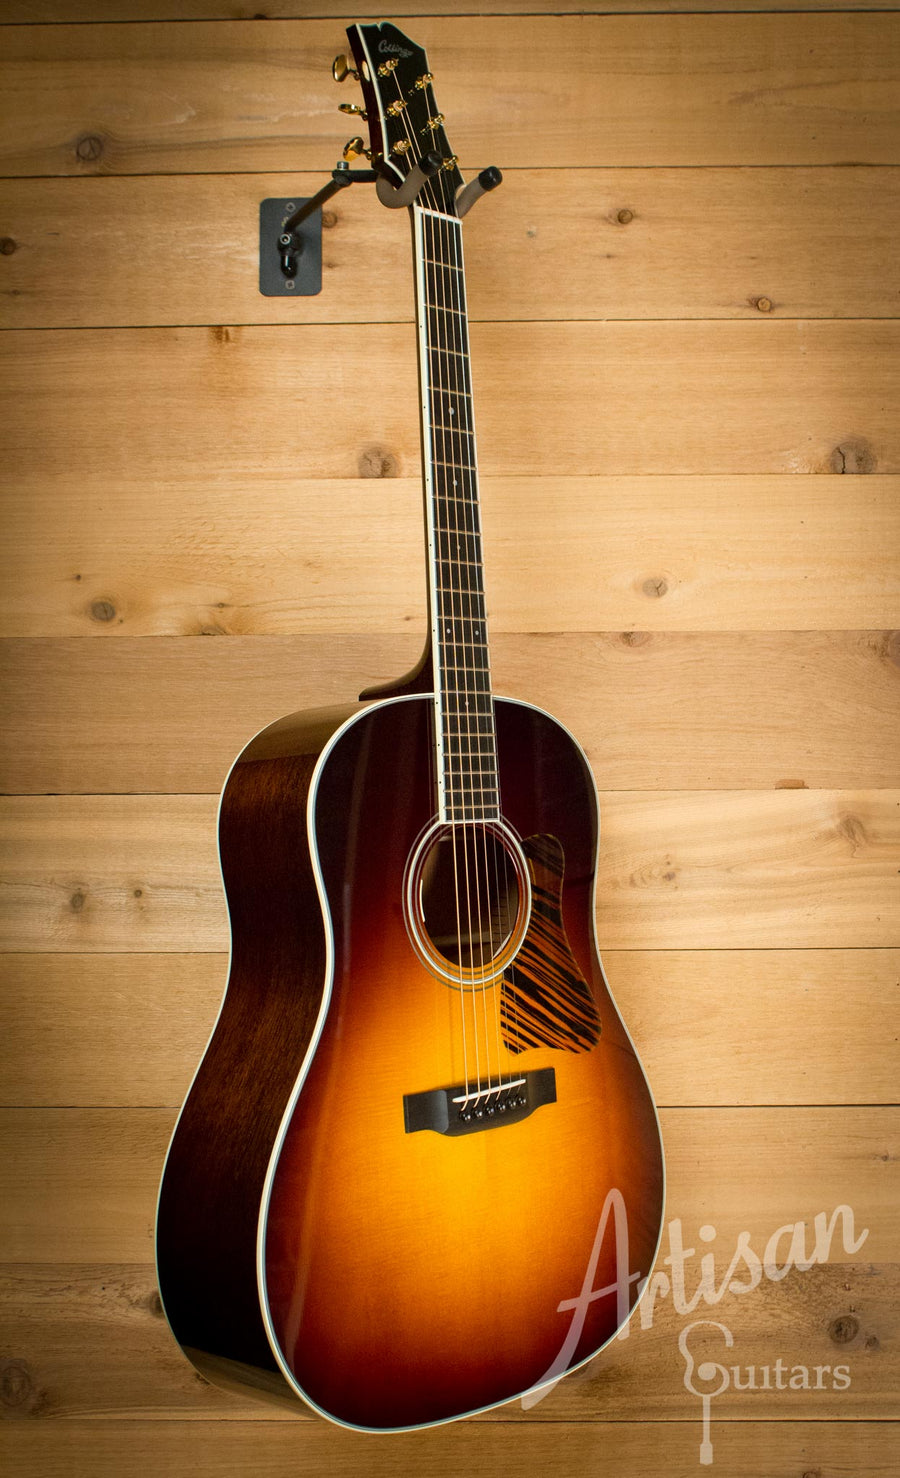 Pre Owned 2014 Collings CJ Sitka Spruce and Mahogany Short Scale ID-9493 - Artisan Guitars